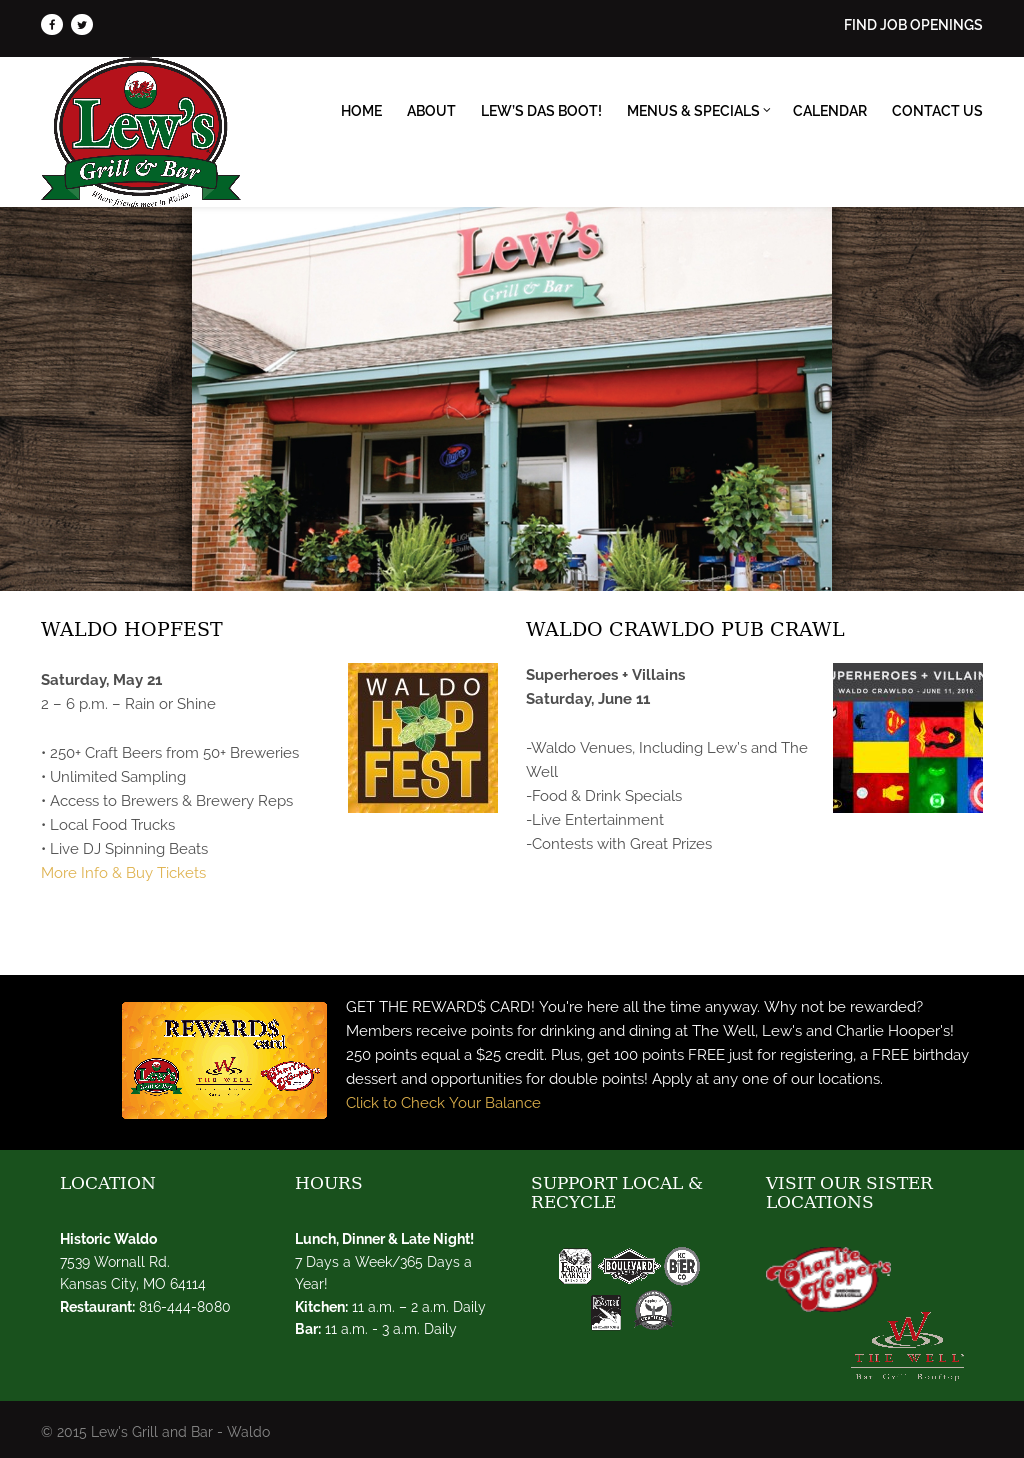 Lew's Grill & Bar Competitors, Revenue and Employees - Owler